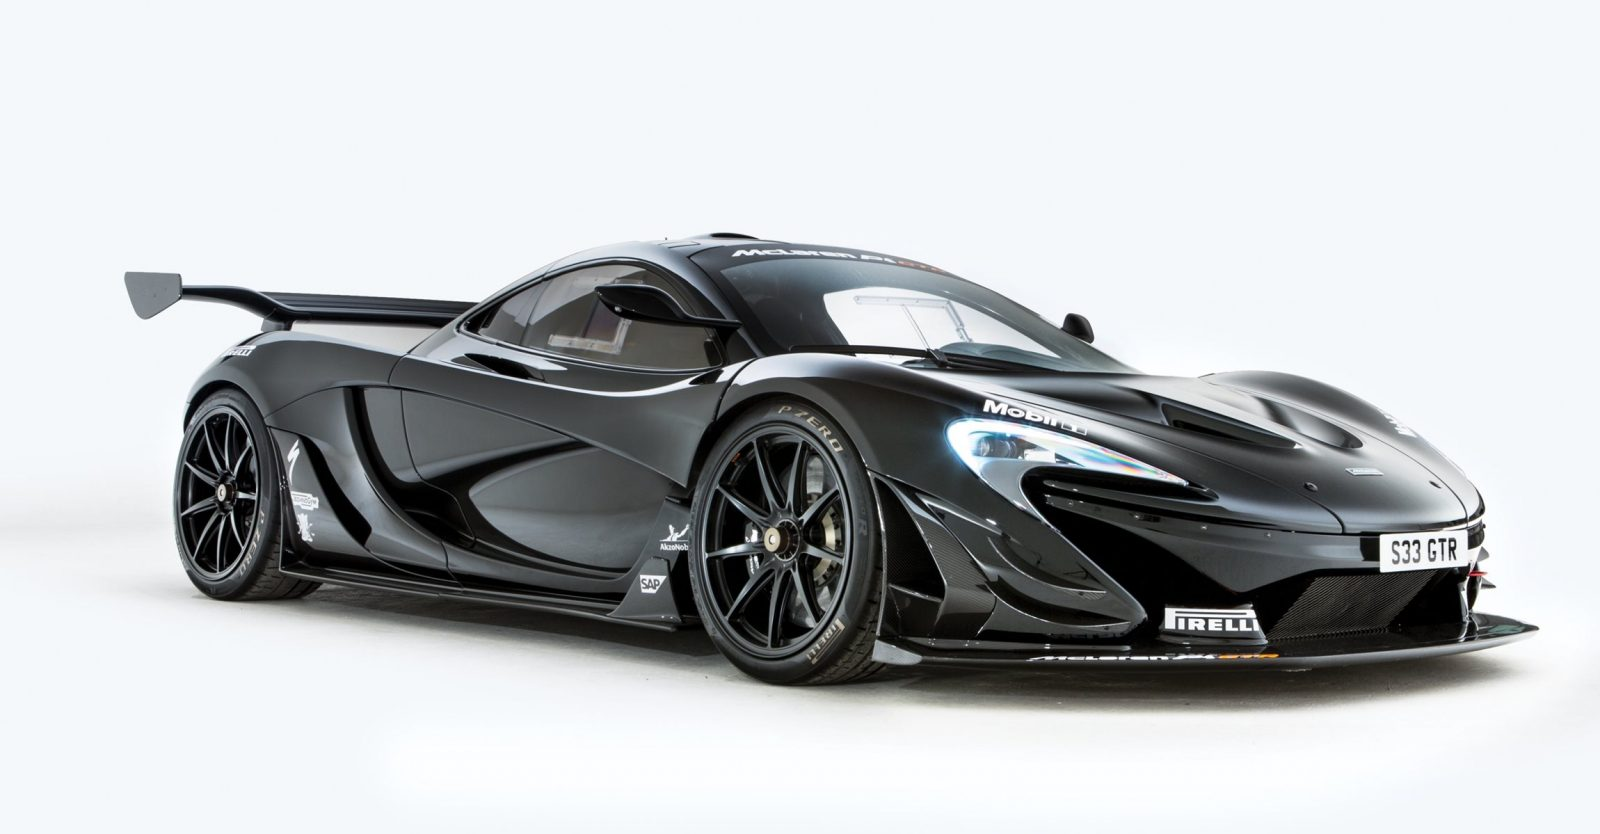 road legal 2016 mclaren p1 gtr heads to rm villa erba 2017 auctions. Black Bedroom Furniture Sets. Home Design Ideas